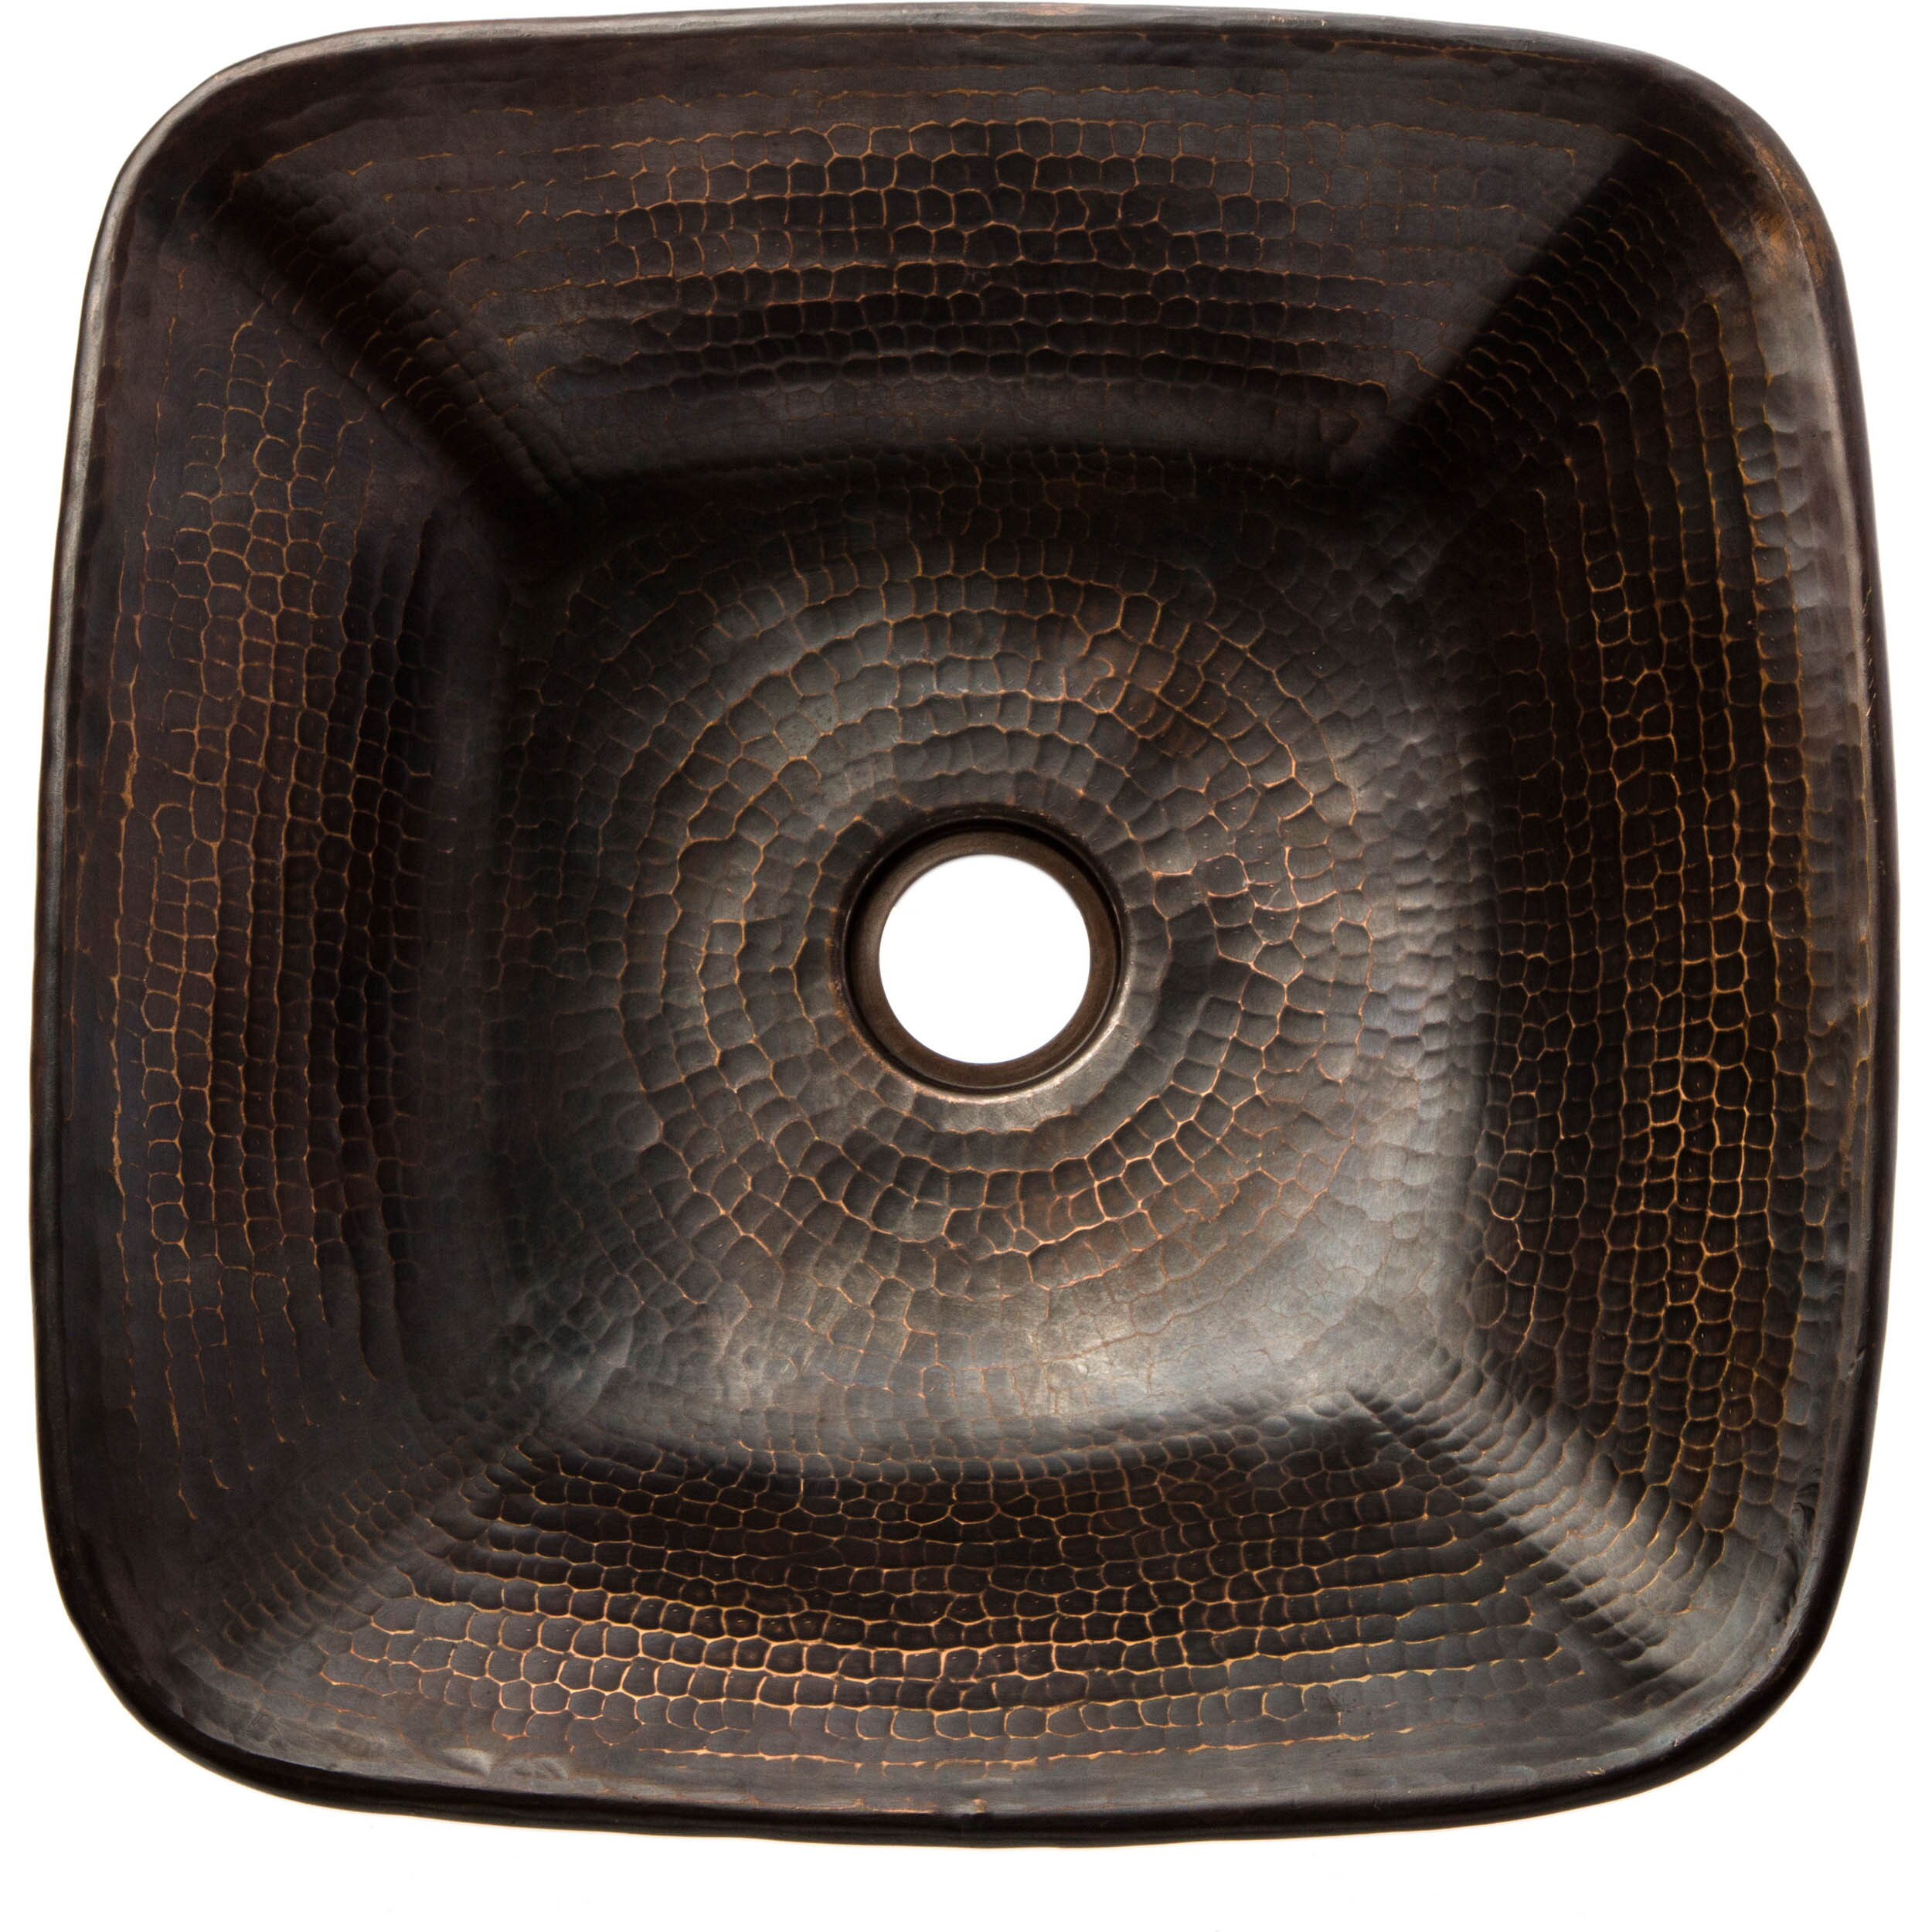 Premier Copper Products Square Hammered Copper Vessel Sink   Free Shipping  Today   Overstock.com   17309658